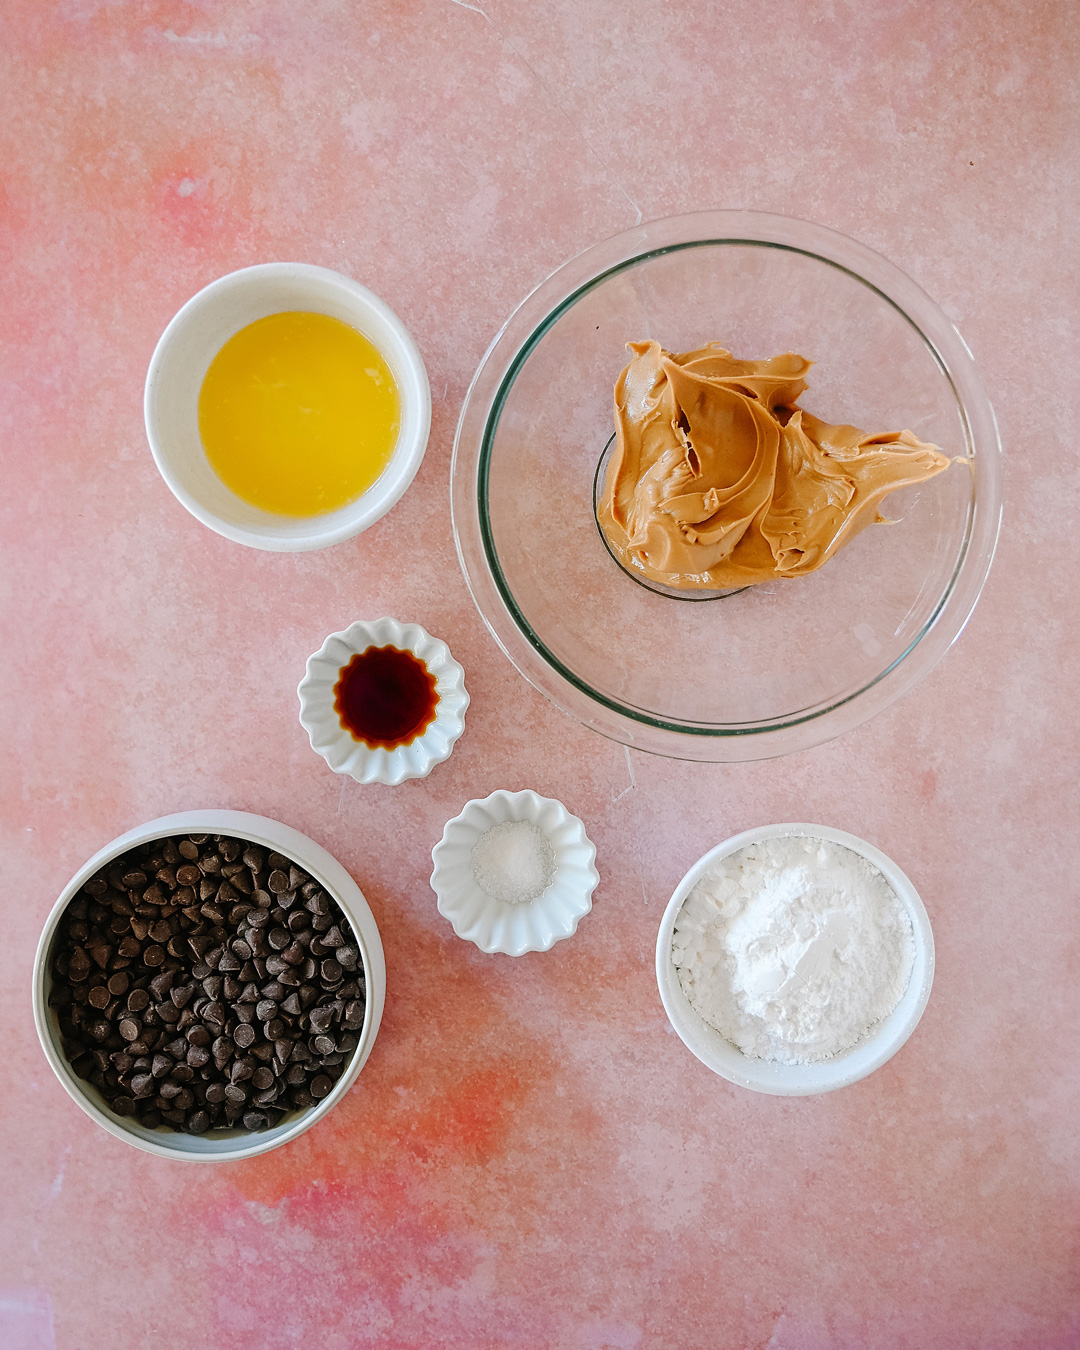 Ingredients for Homemade Peanut Butter Balls